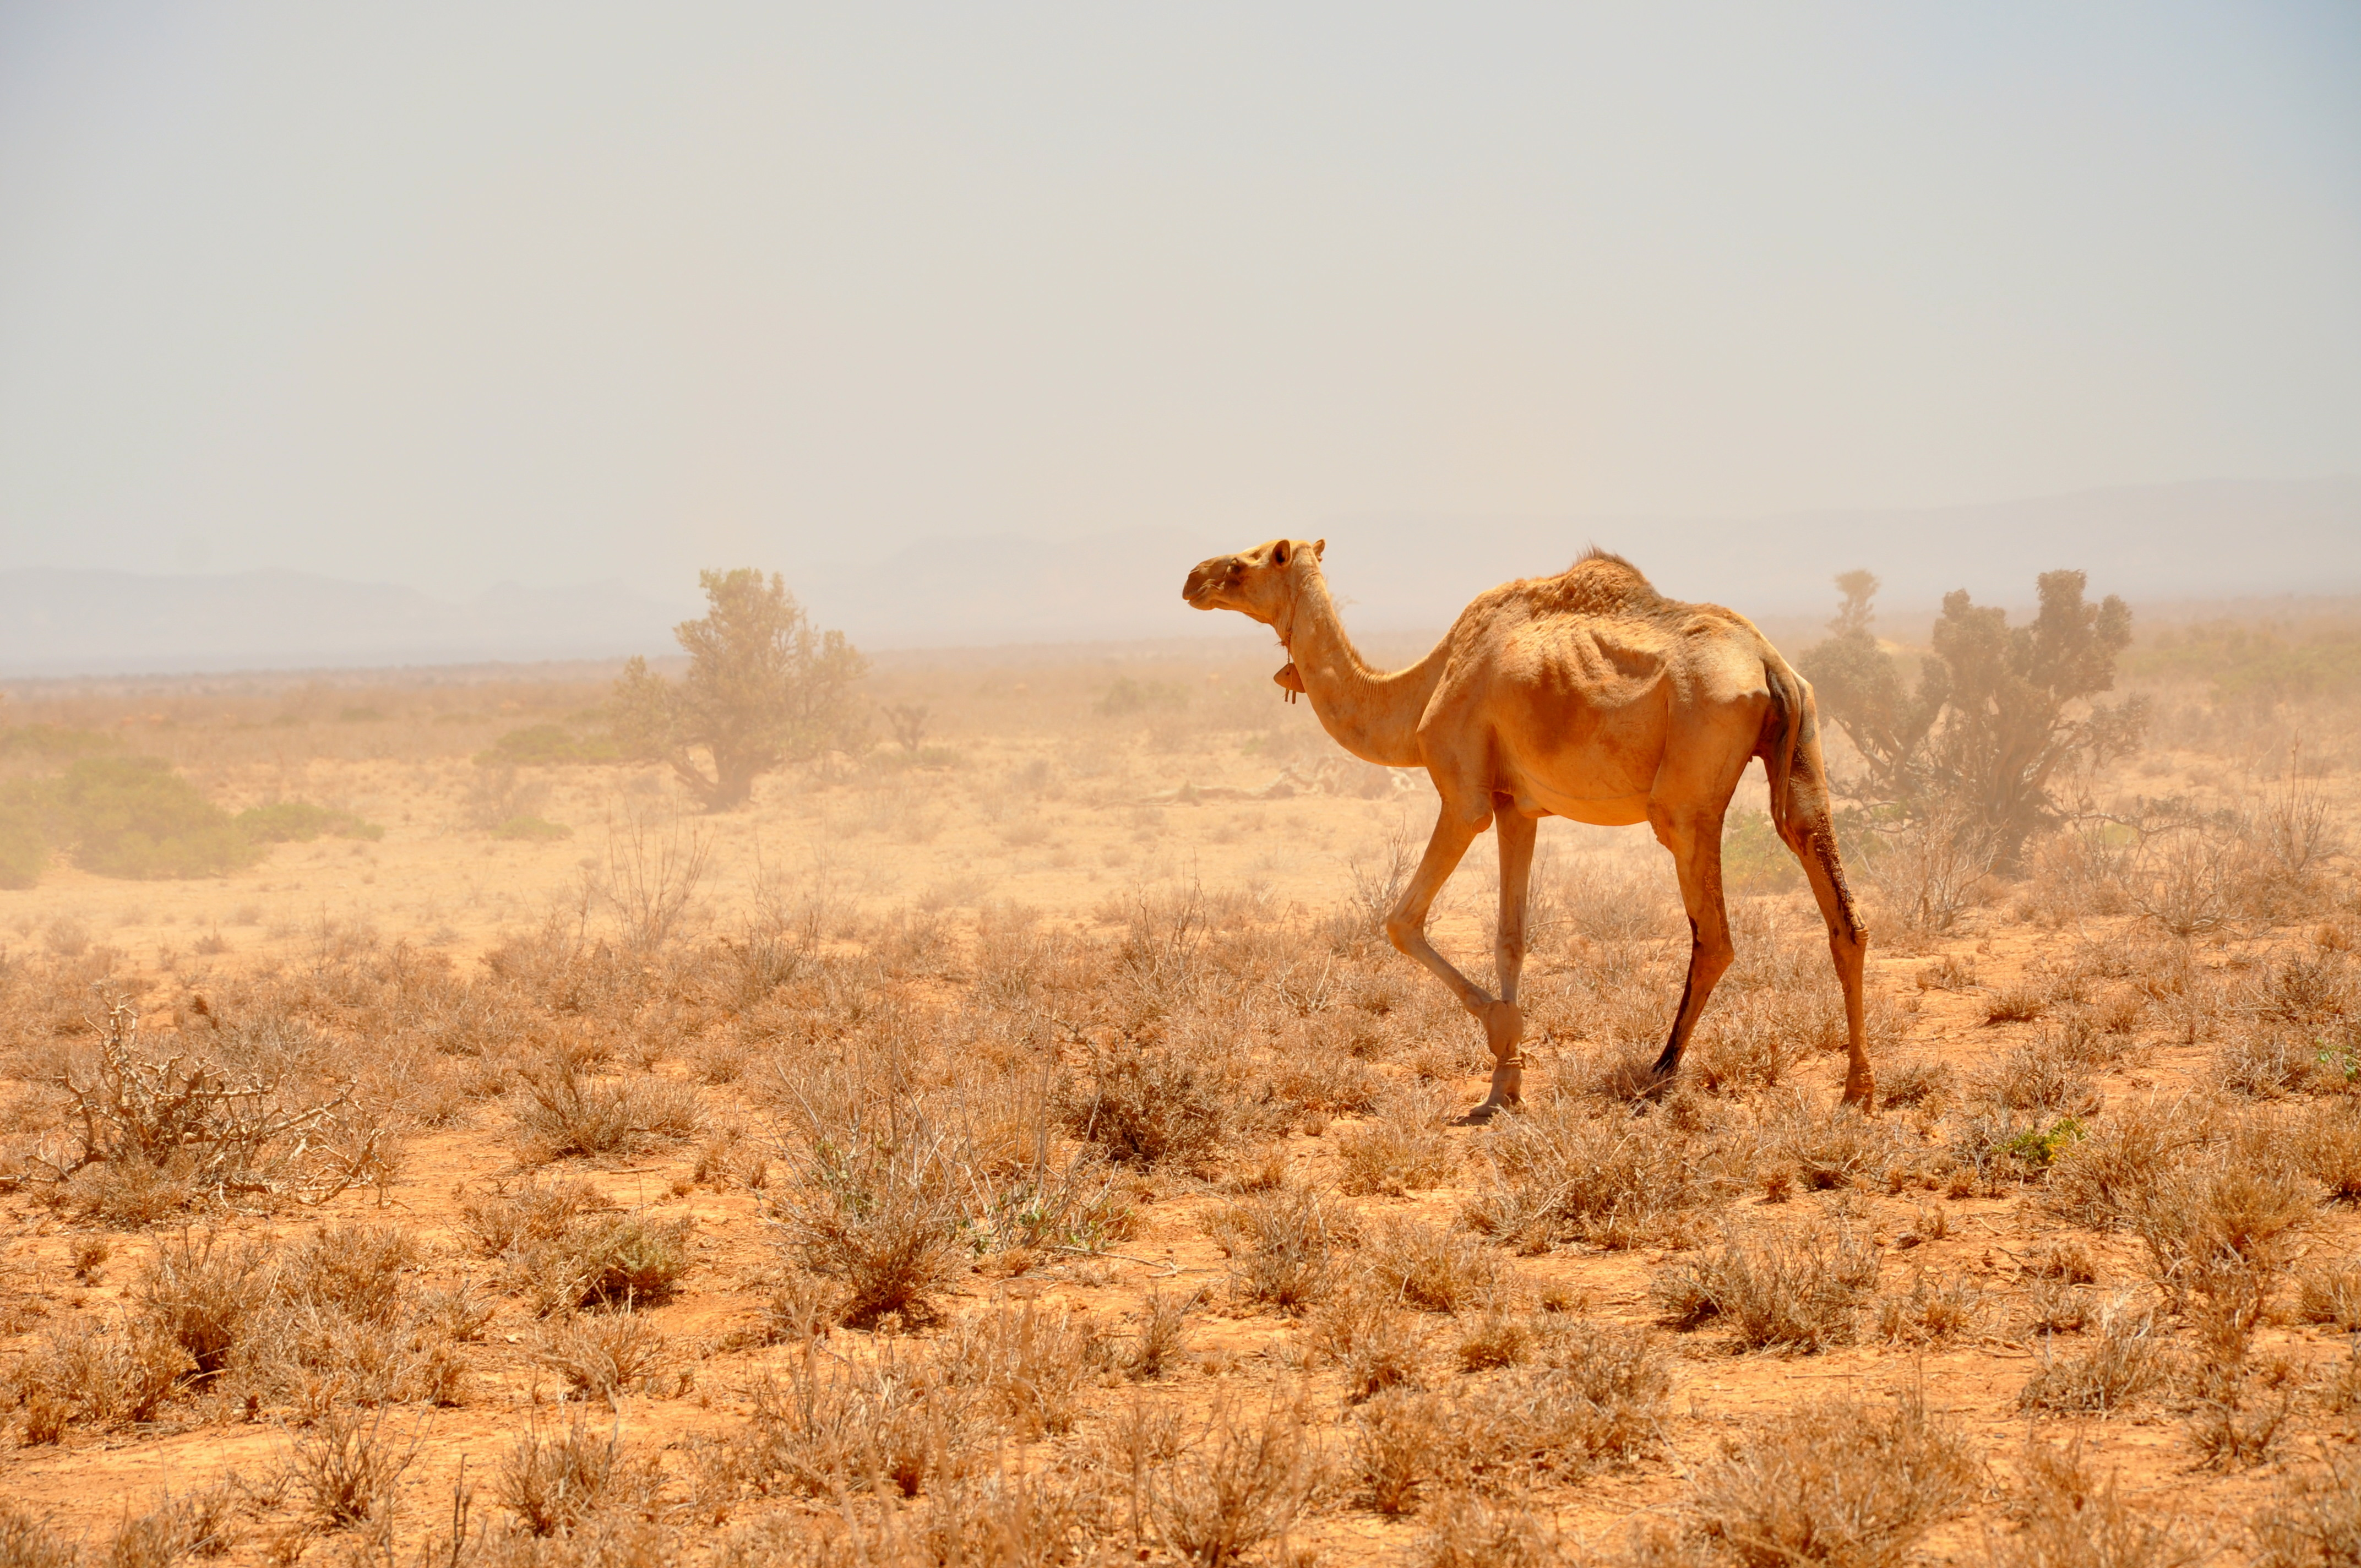 Marching for the climate: The death of pack animals reiterates the dire situation caused by drought in East Africa